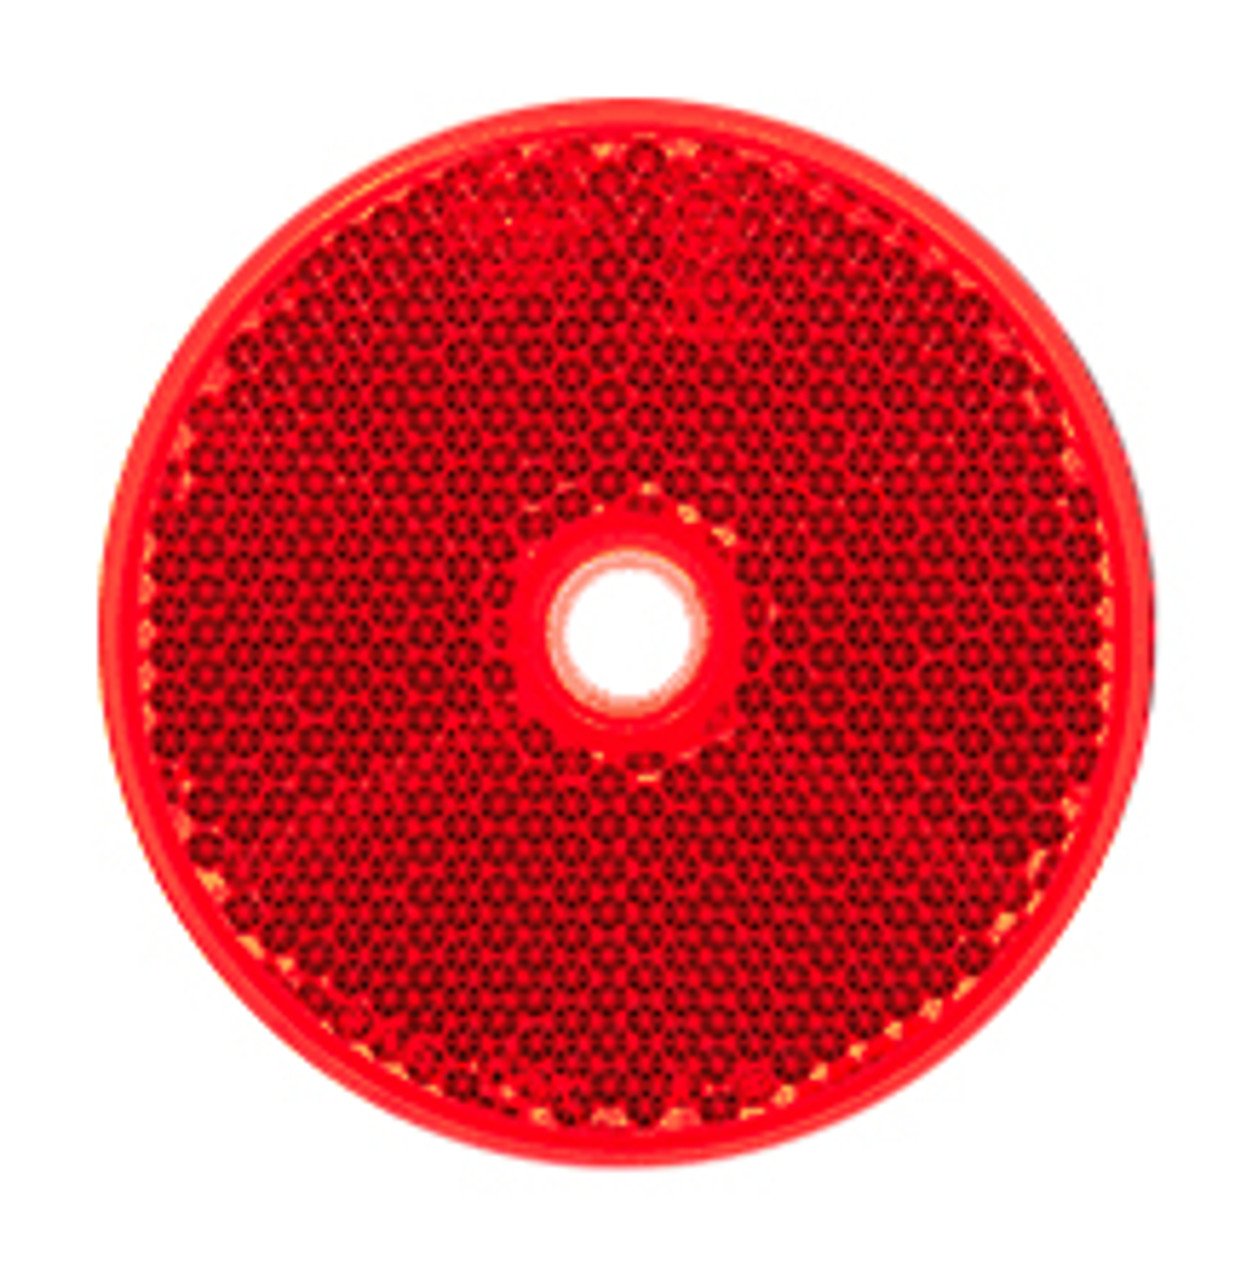 66R - Round Red Reflex Reflector. Low Profile Design. Screw Mount. Premium Quality. ECE Approved. Autolamp. Ultimate LED.